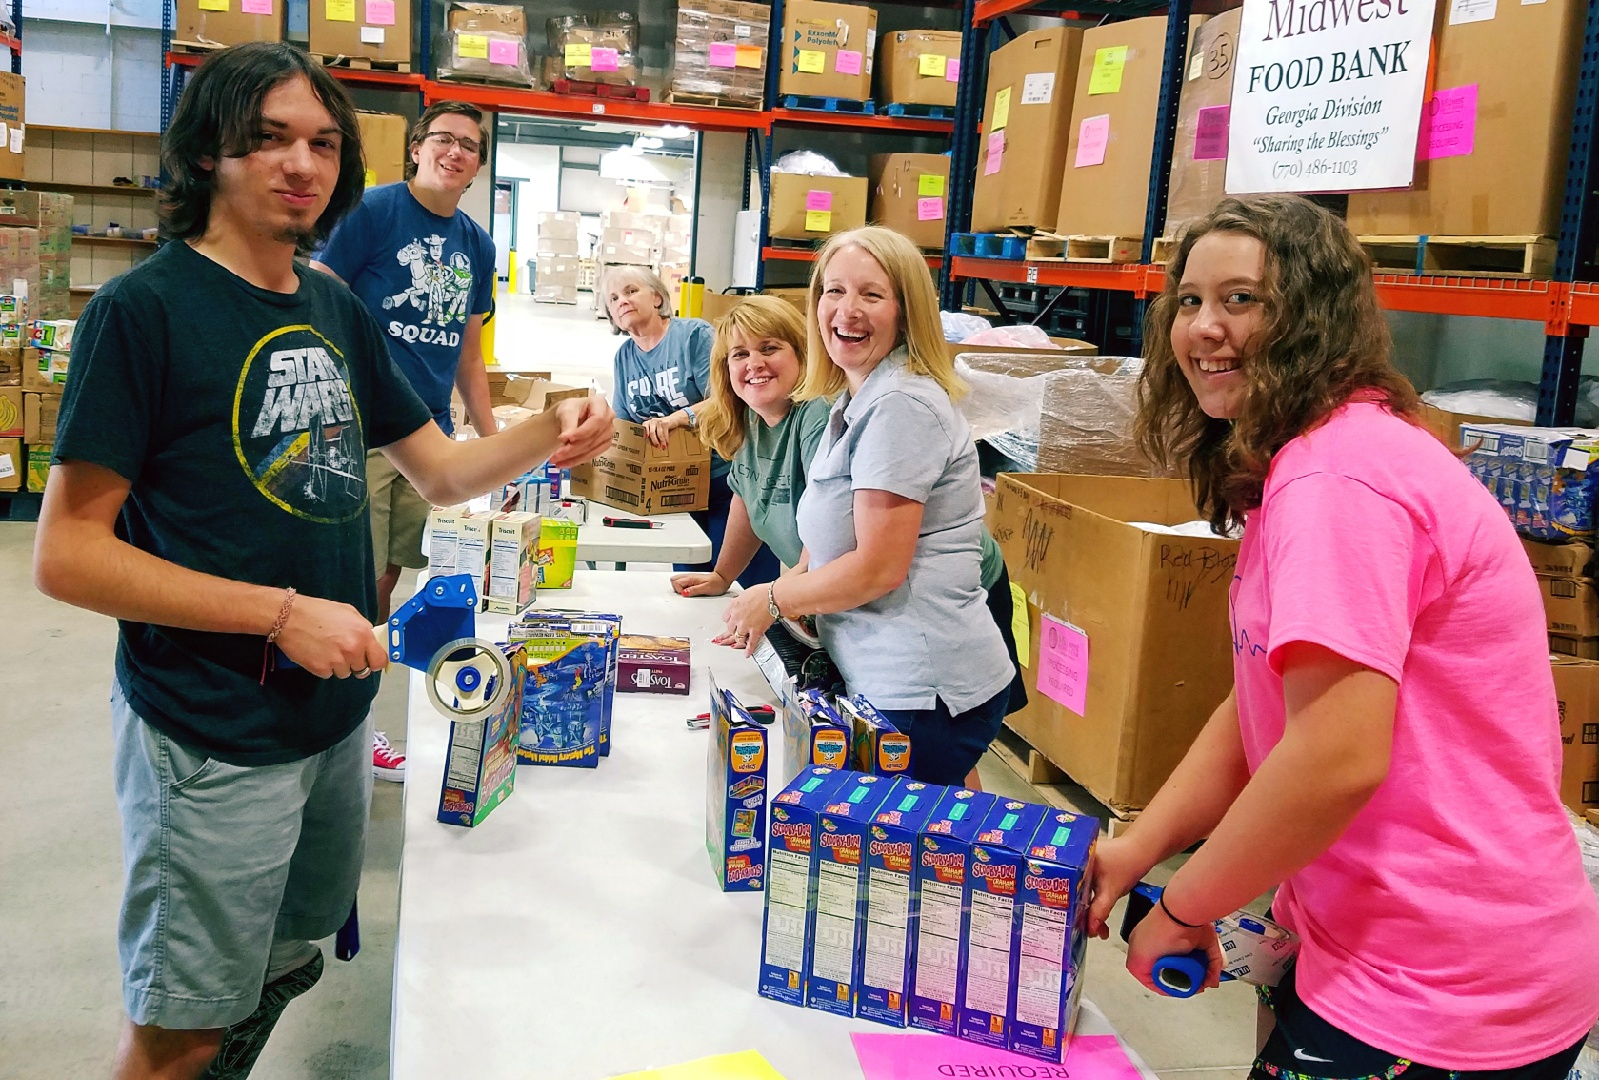 Monday Mission - Midwest Food Bank